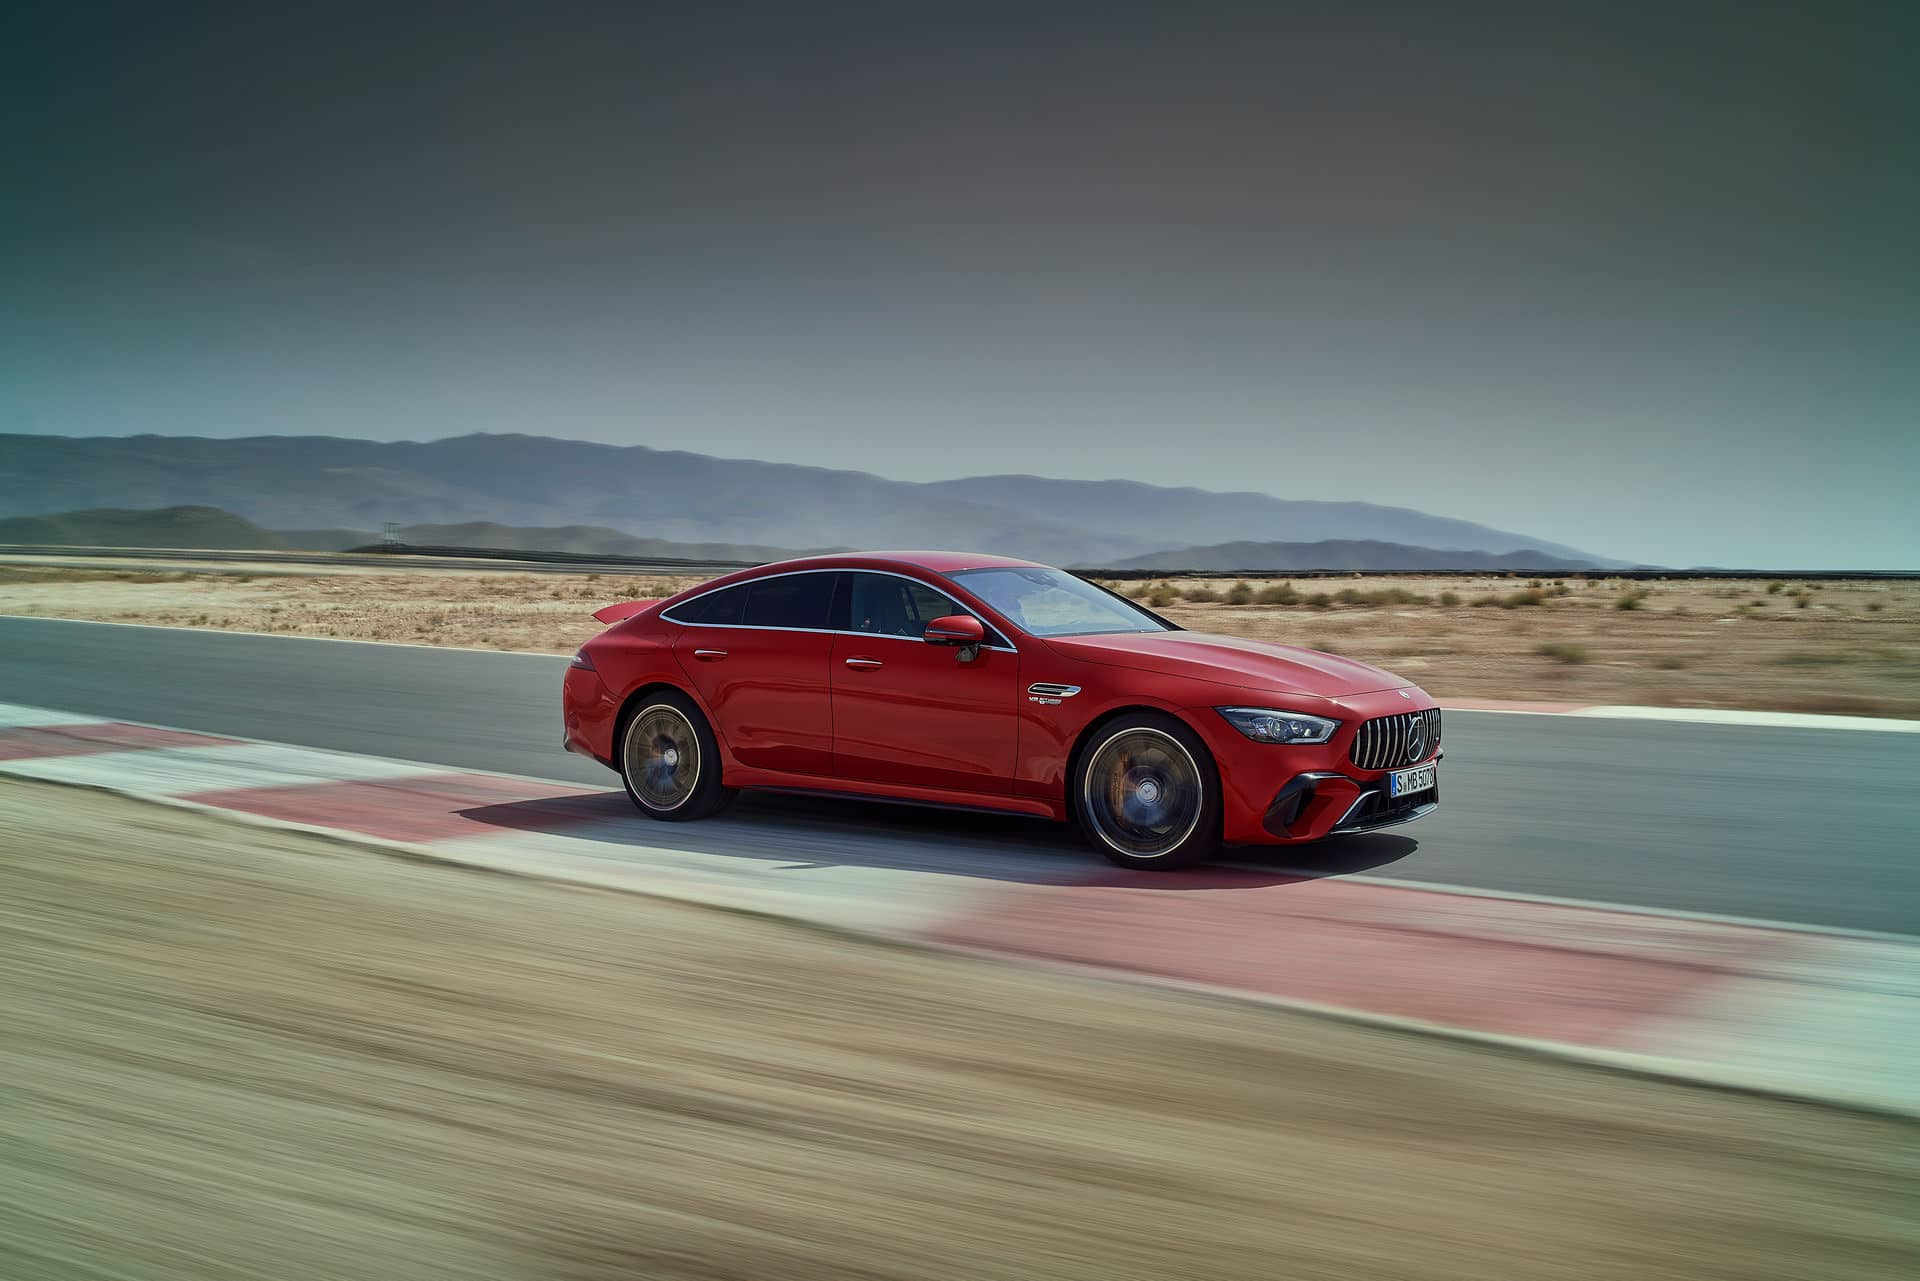 mercedes-amg gt 63 s eperformance (6)